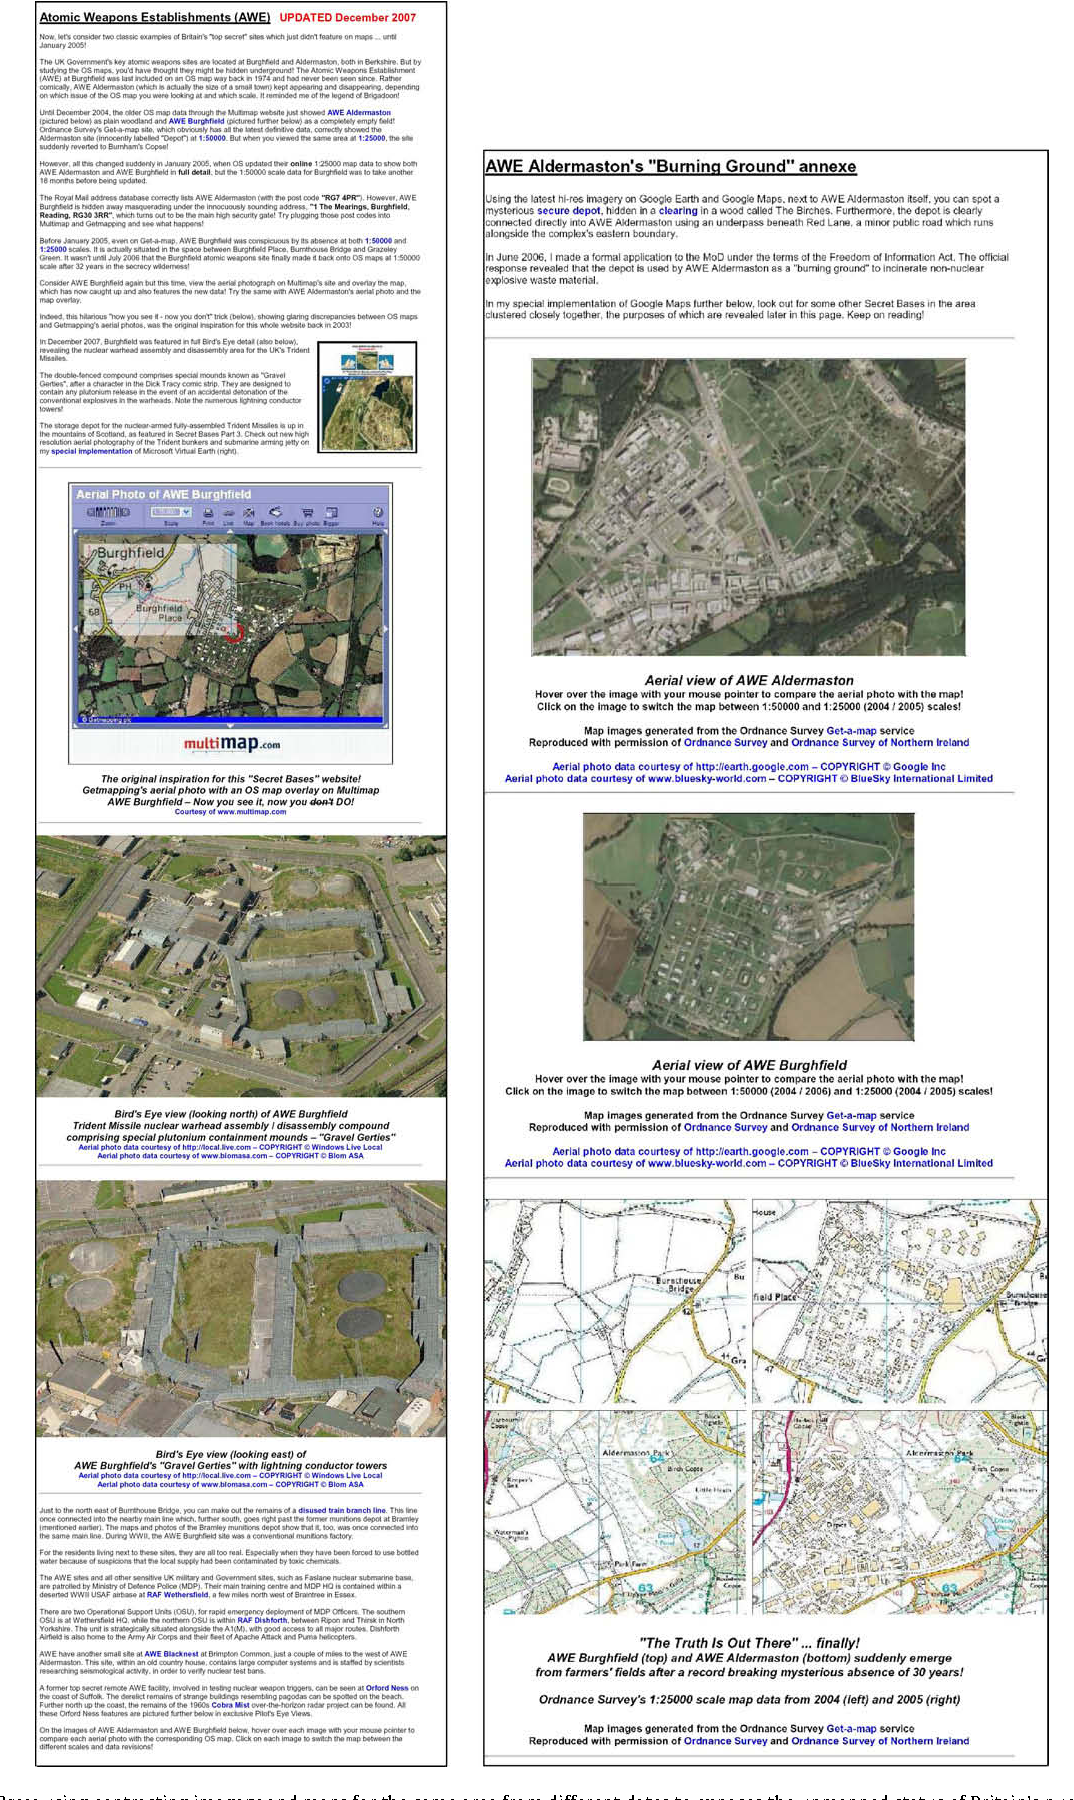 Satellite imagery and the spectacle of secret spaces